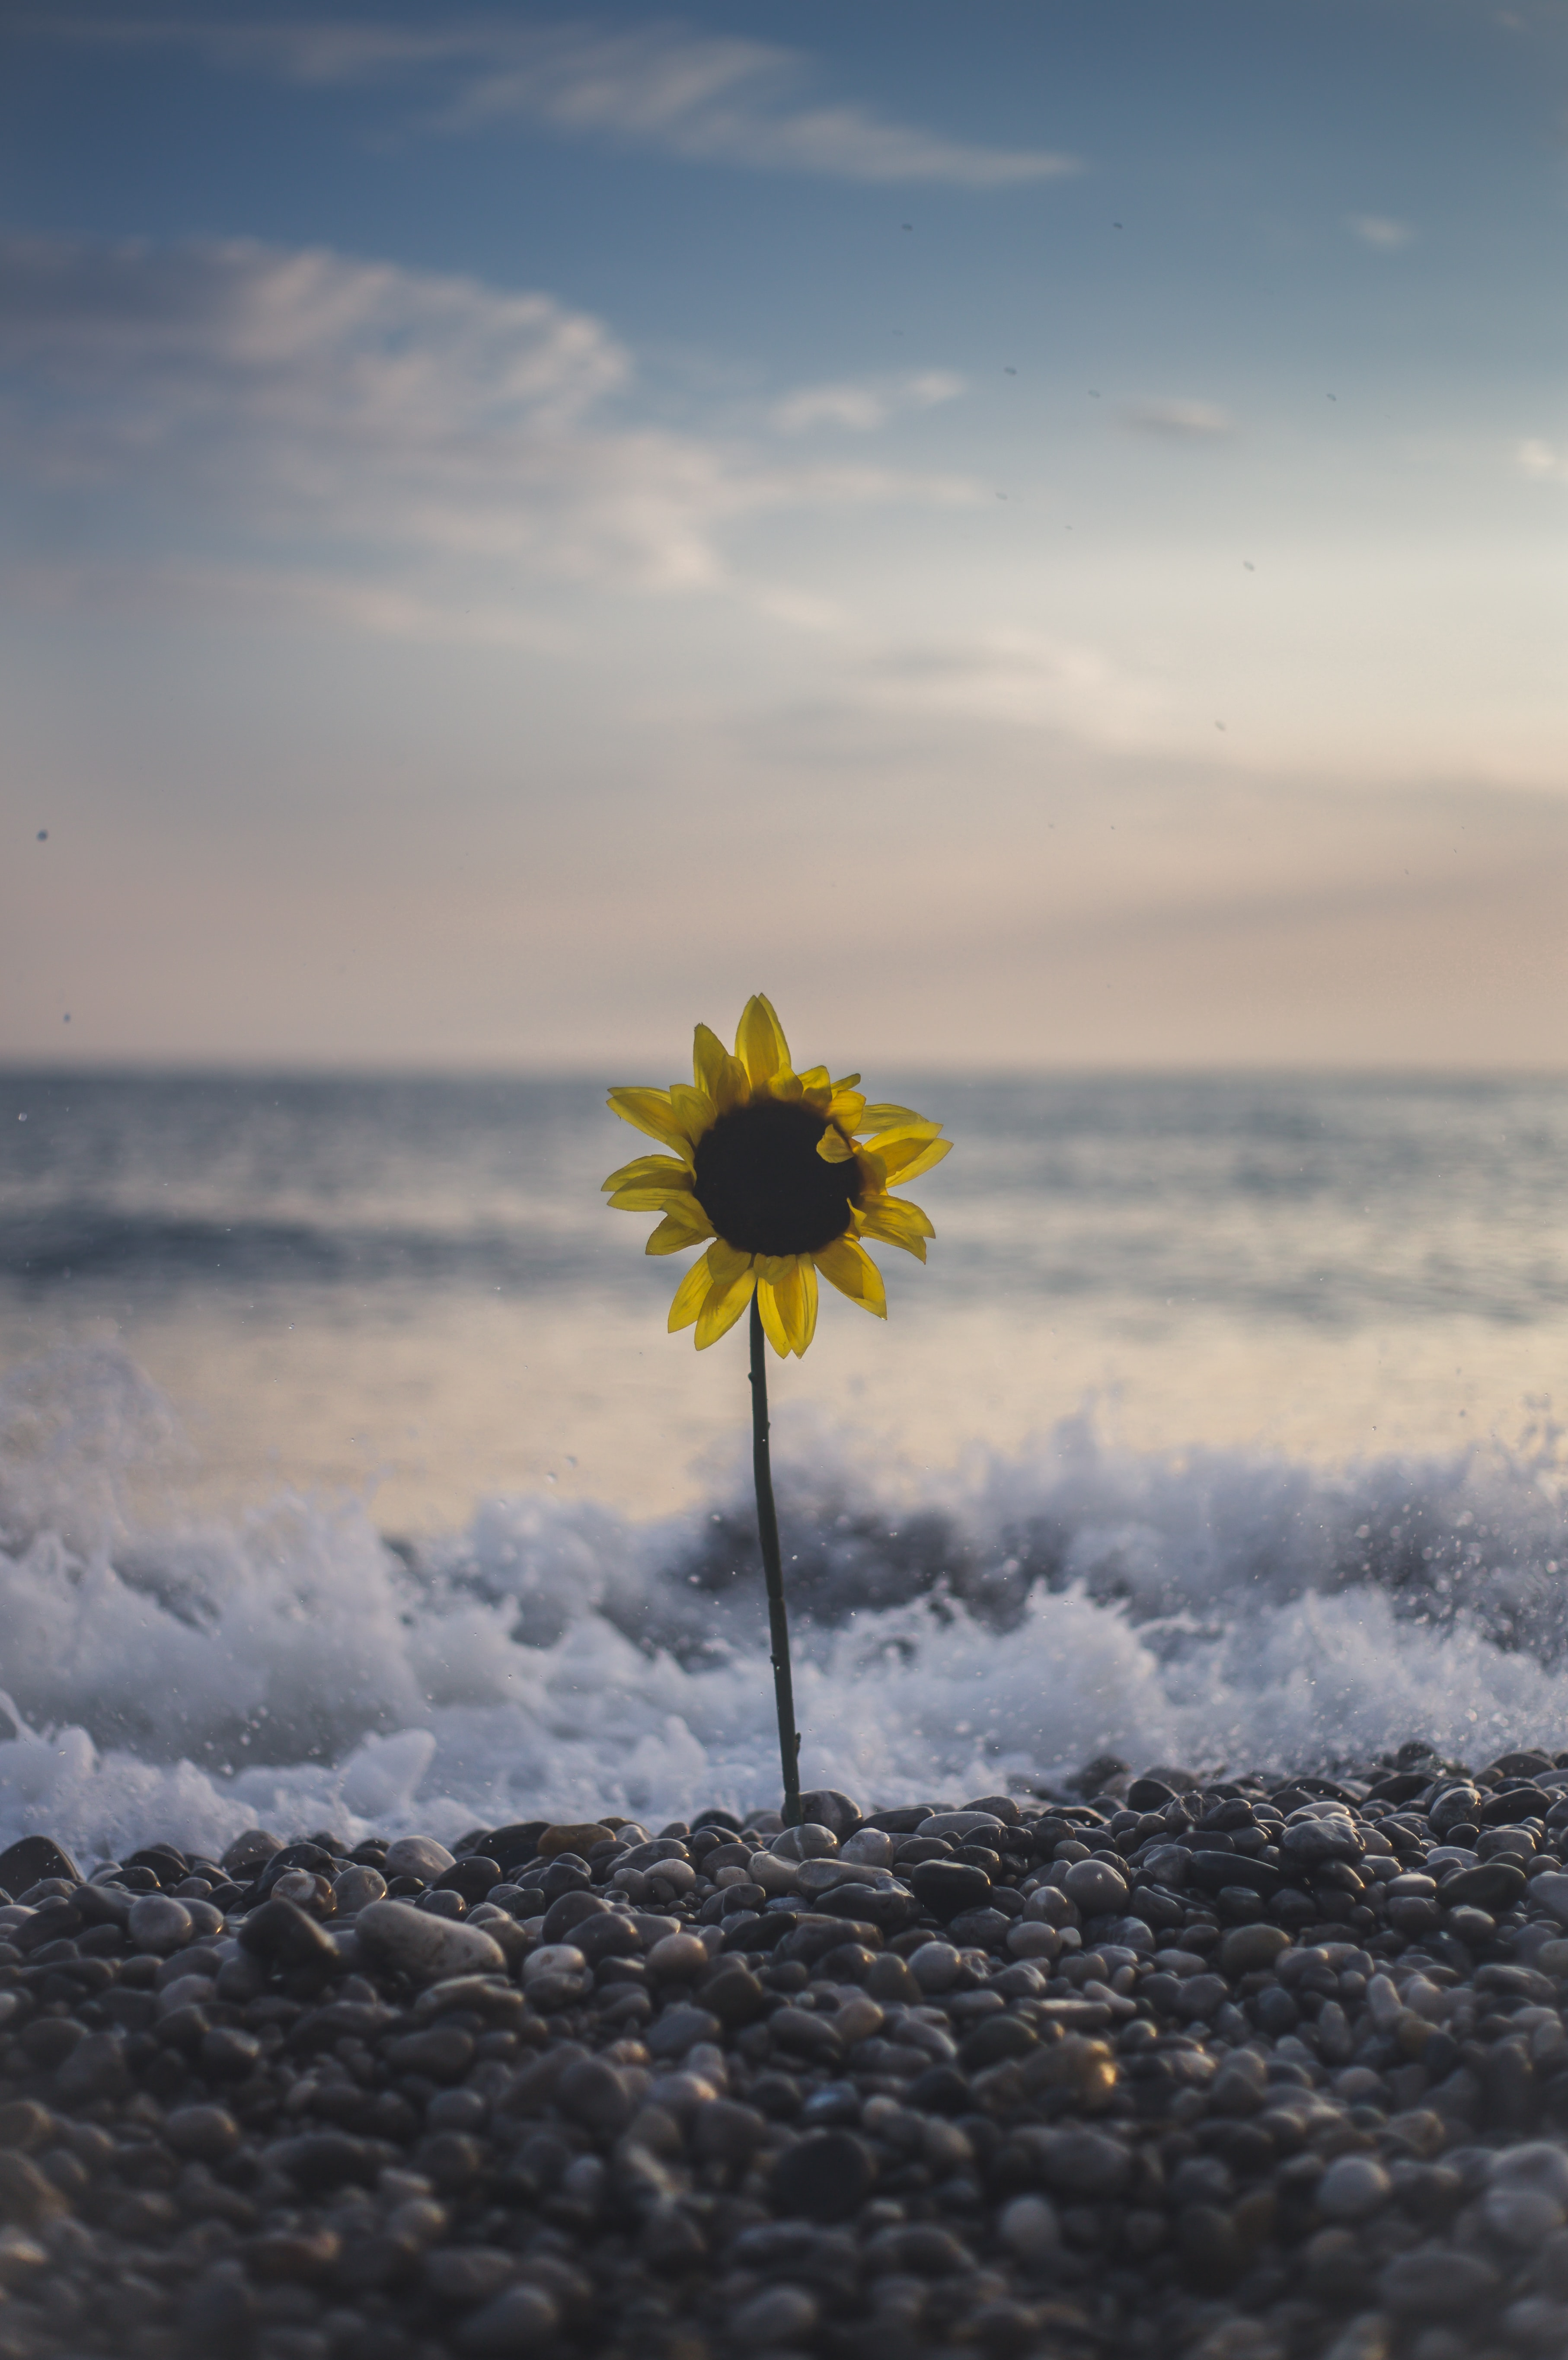 sunflowers on seashore beside wave